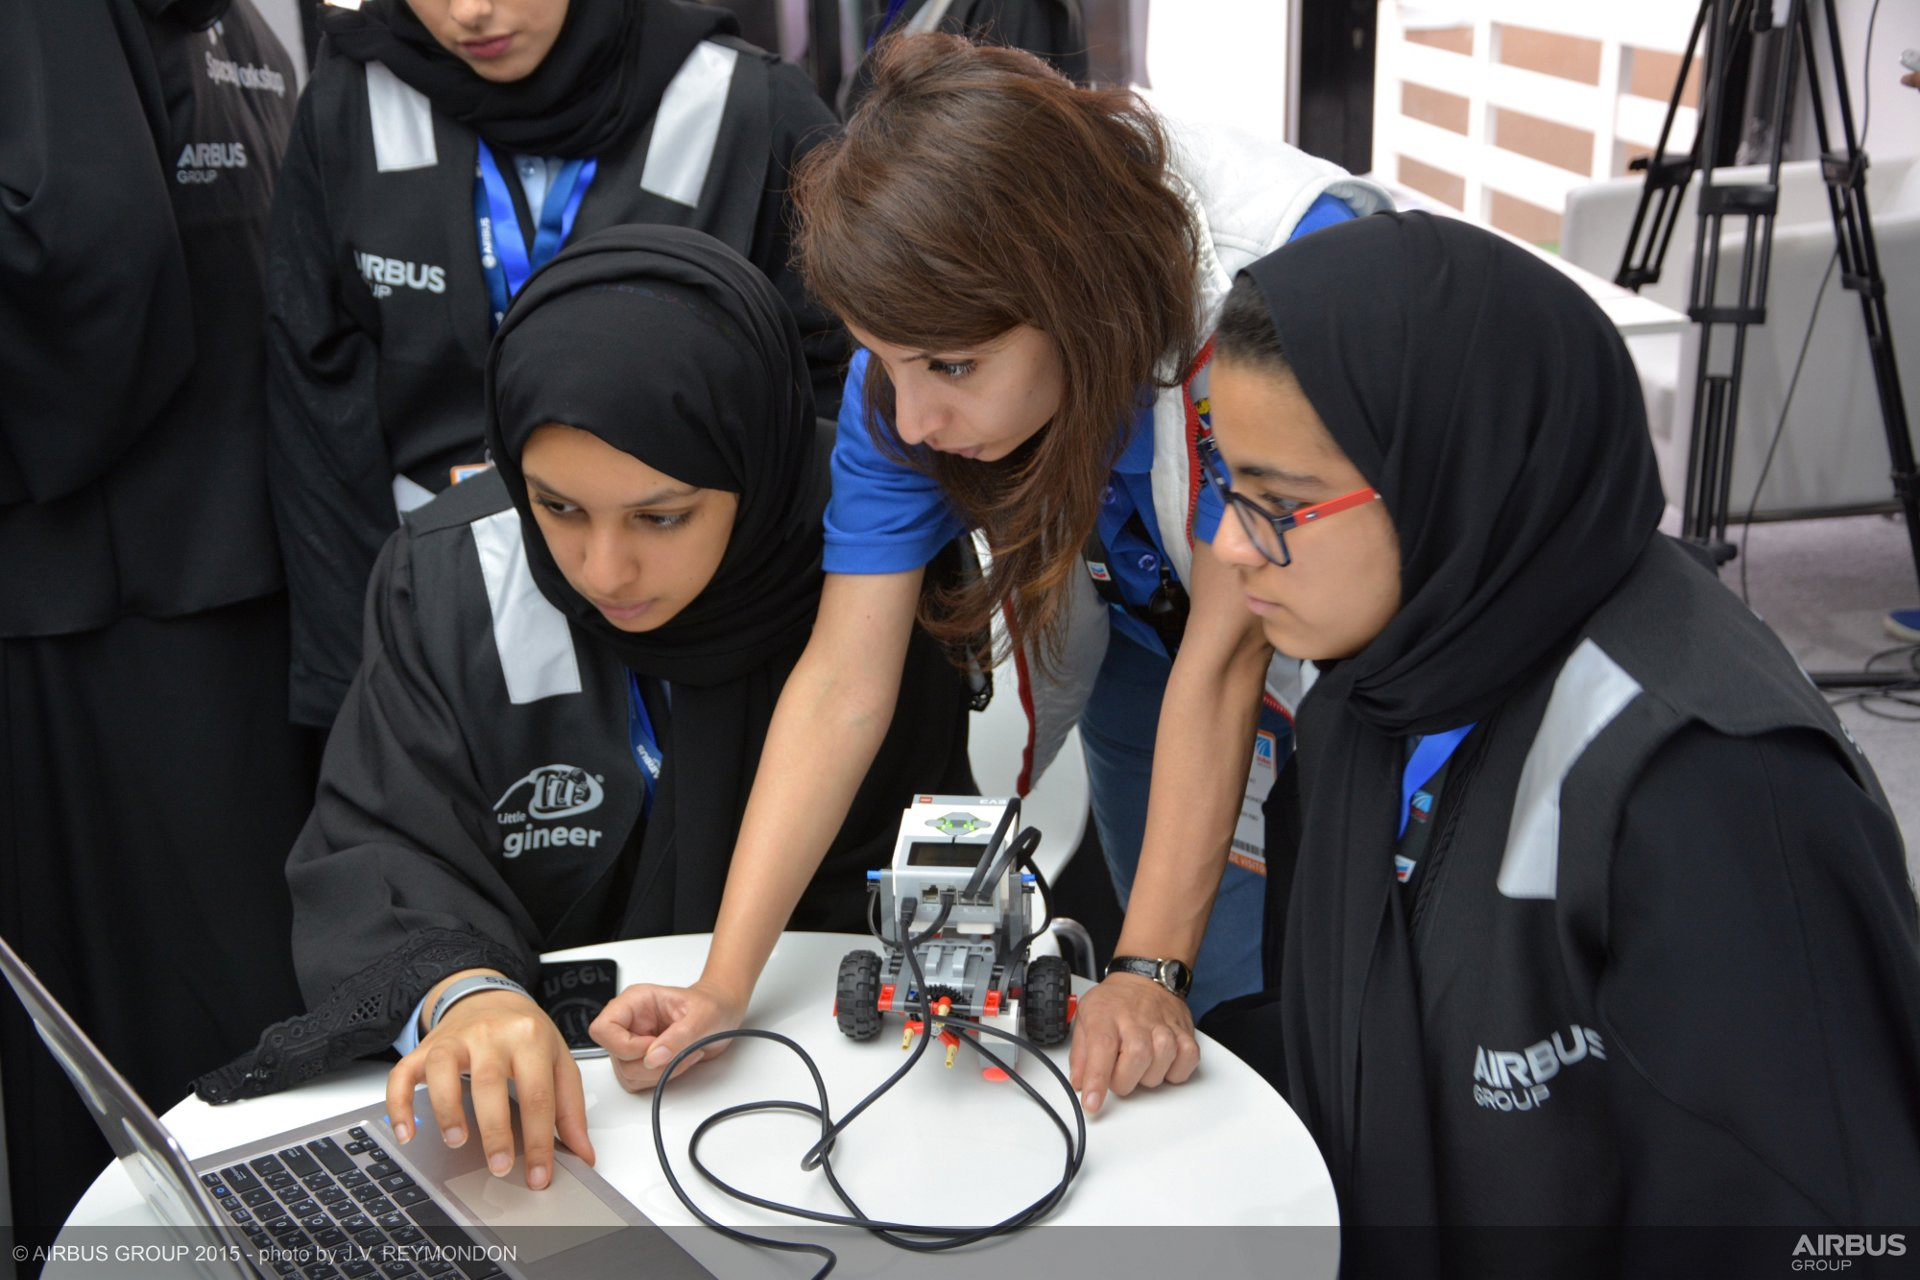 Airbus Foundation brings youth development programme to Africa